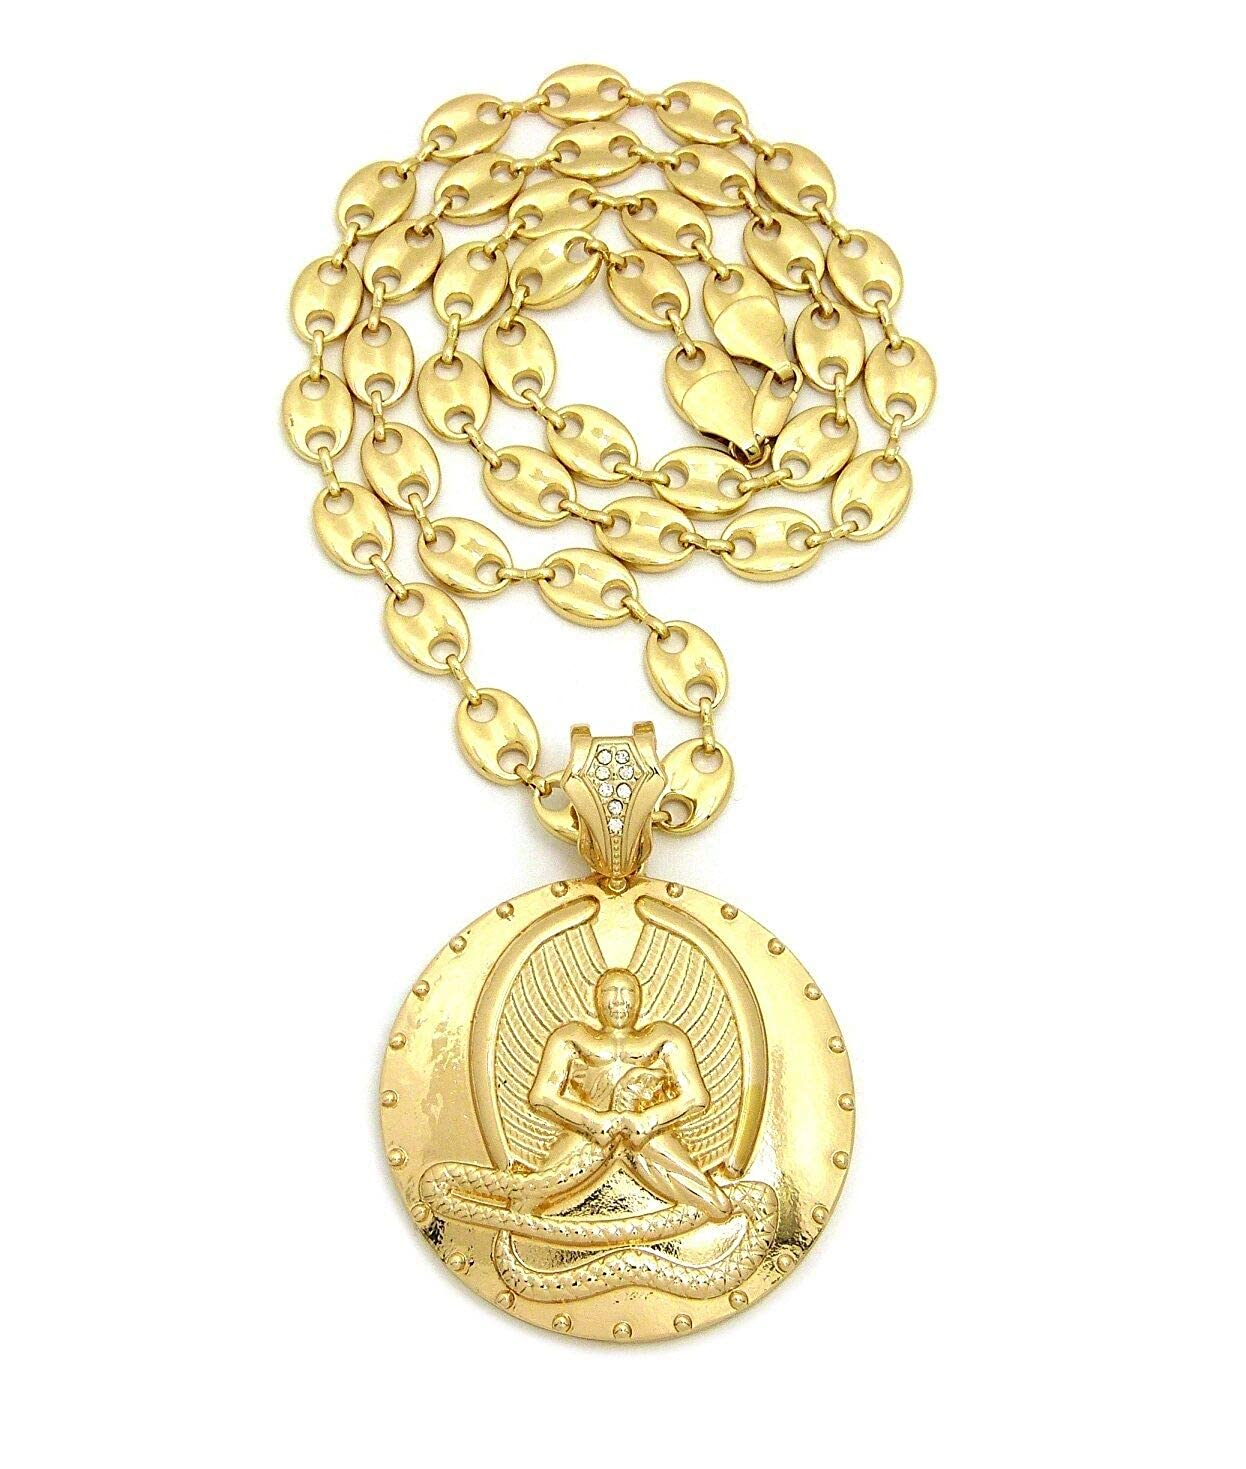 BLINGFACTORY Hip Hop Gold Plated EUPHANASIA Pendant /& 30 10mm Marina Chain Necklace